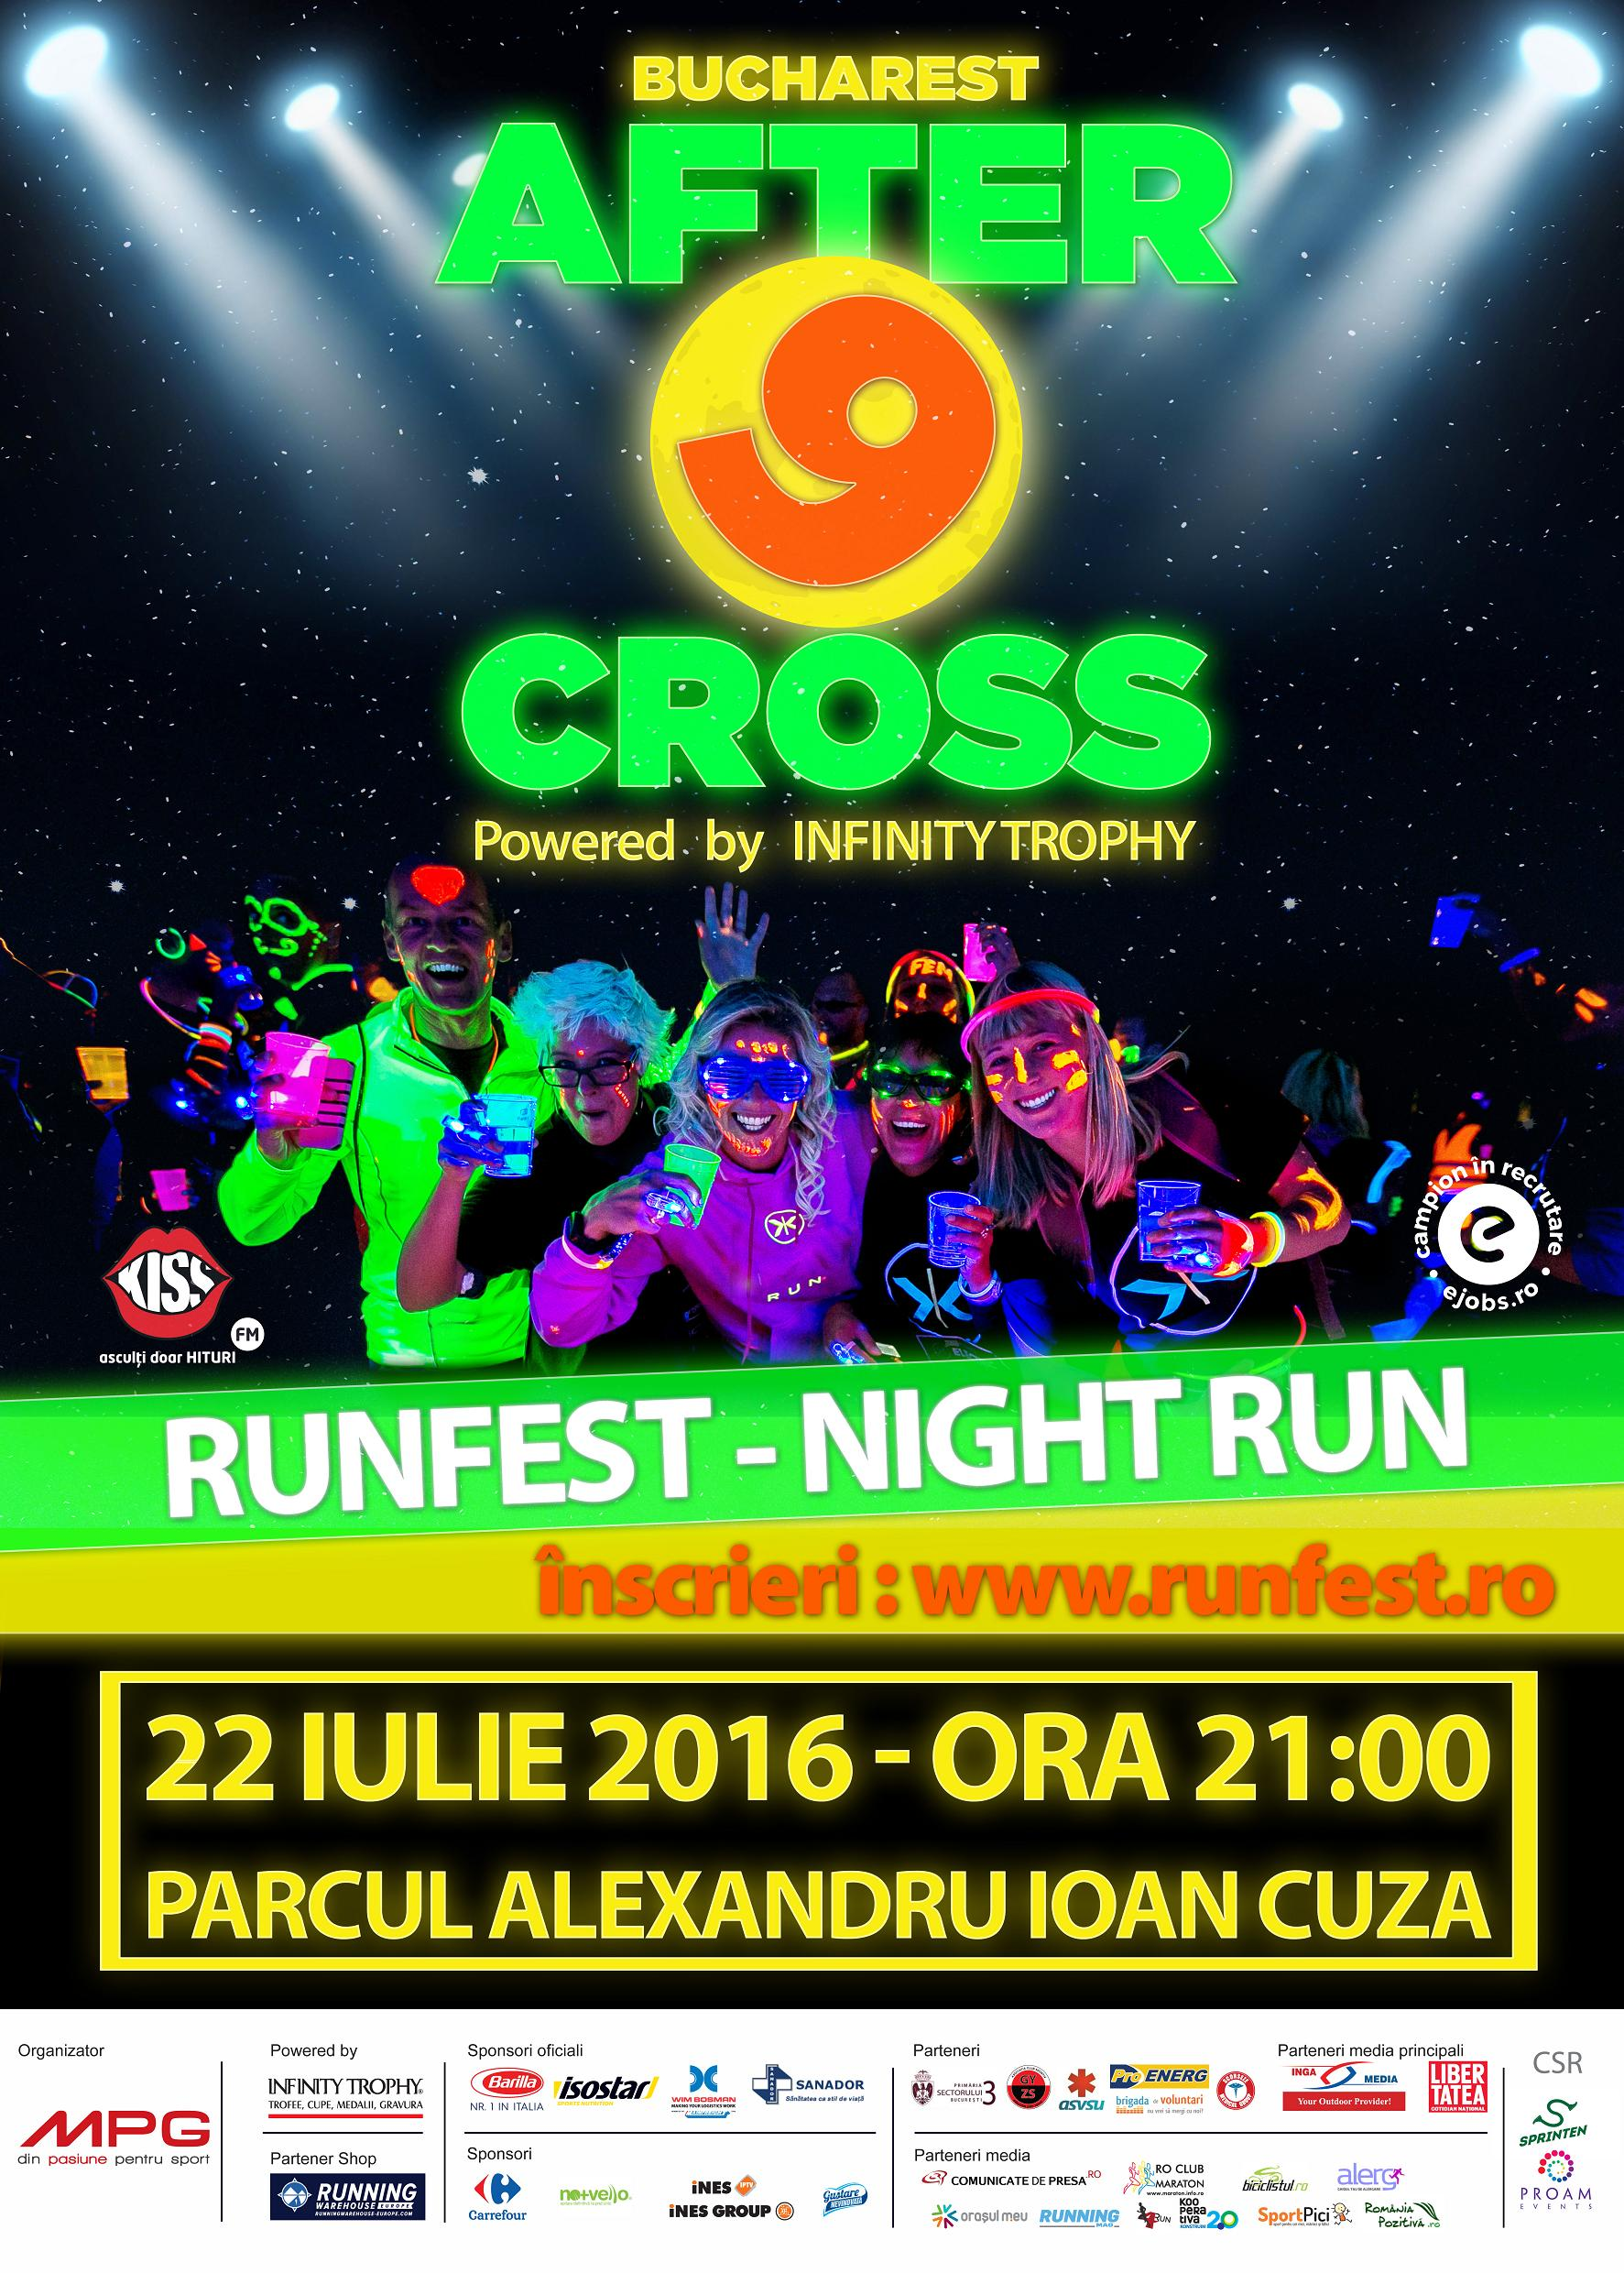 Afis_Bucharest After9Cross 2016